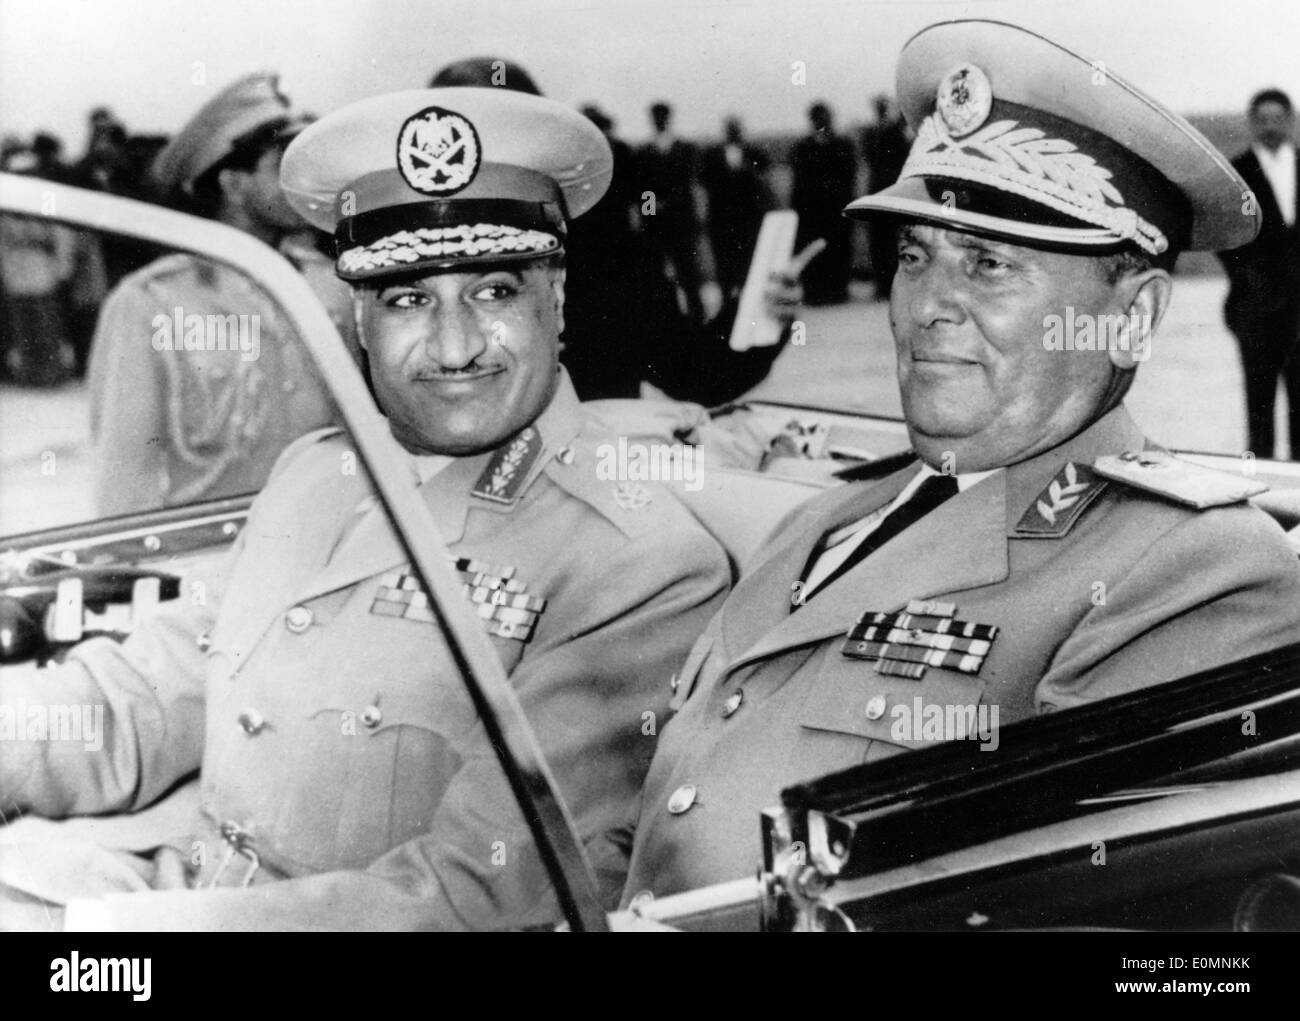 Josip Tito and Gamal Abdel Nasser riding in a car - Stock Image